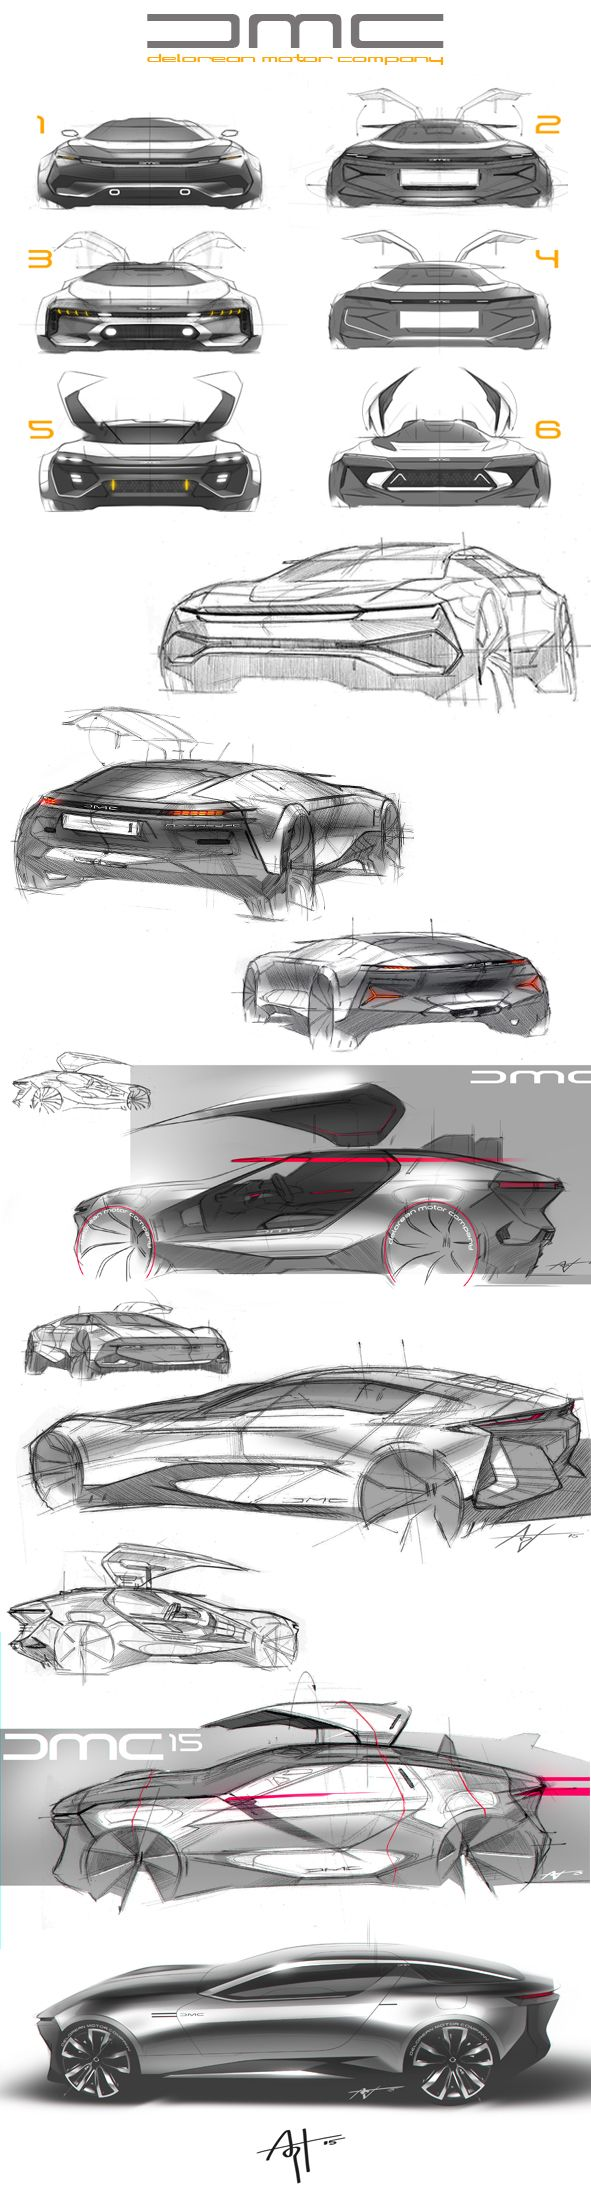 Some randon DeLorean sketches.. on Behance